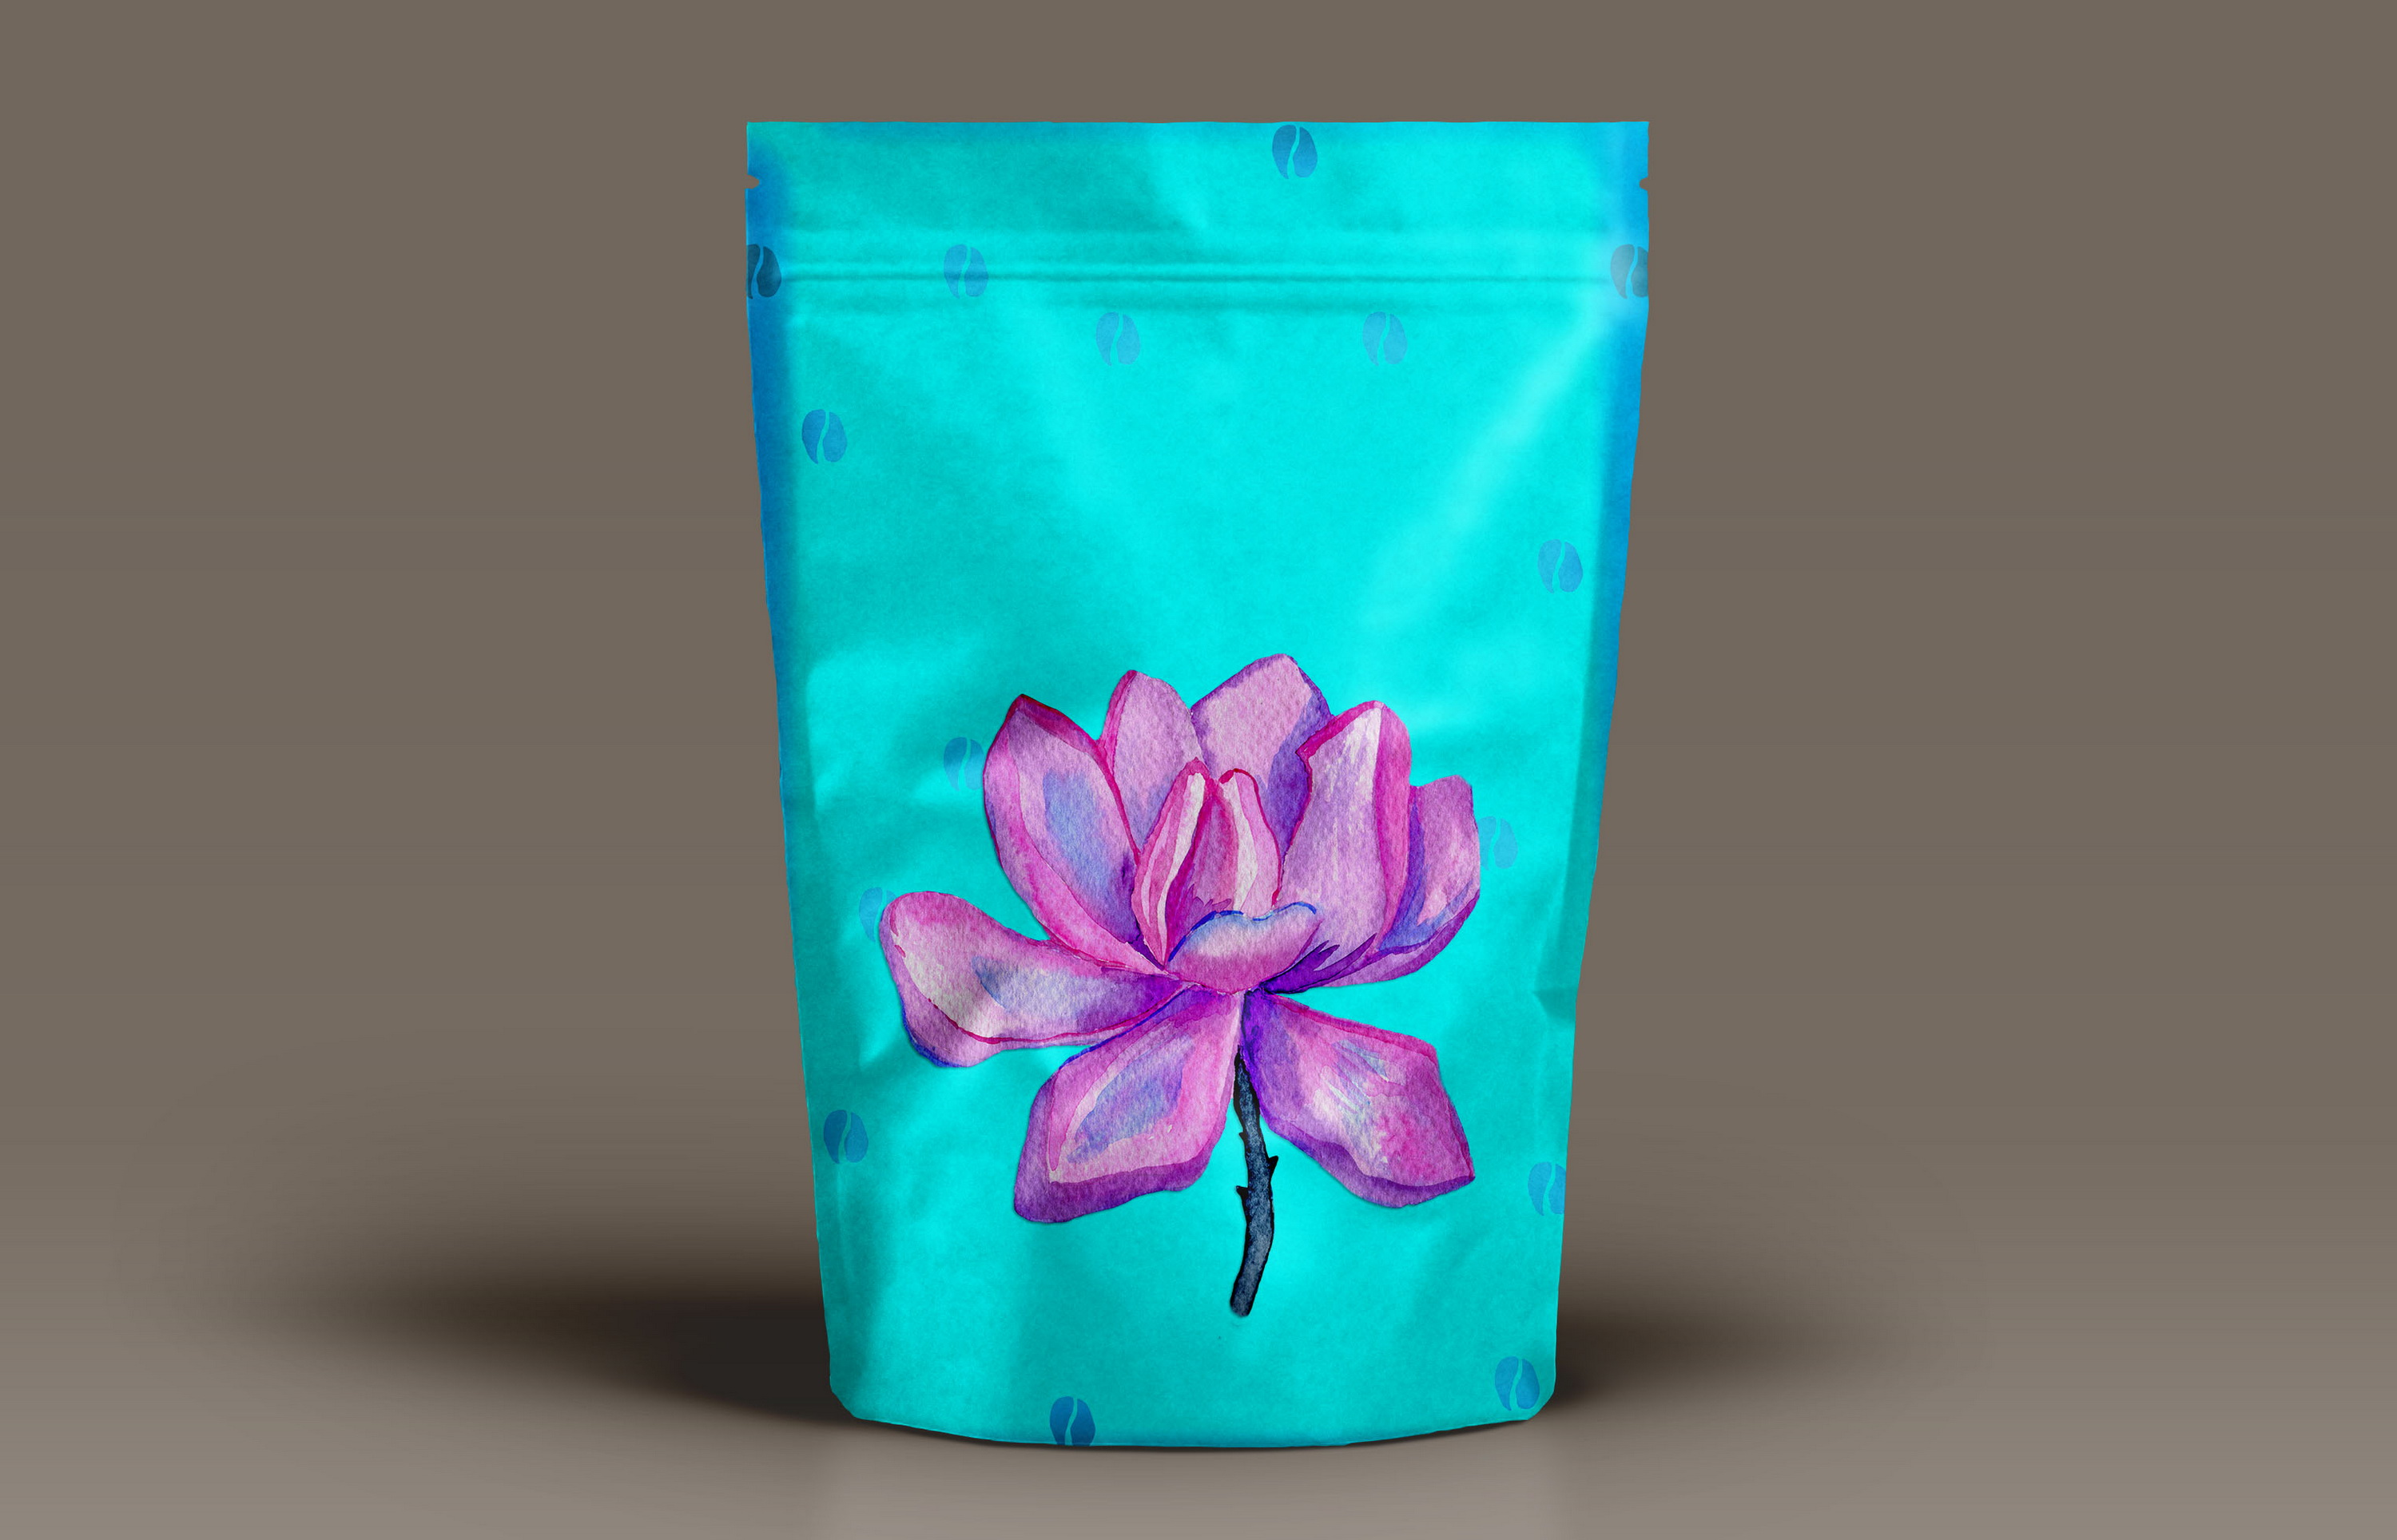 Watercolor Magnolia Flower - PNG Sublimation Design example image 5